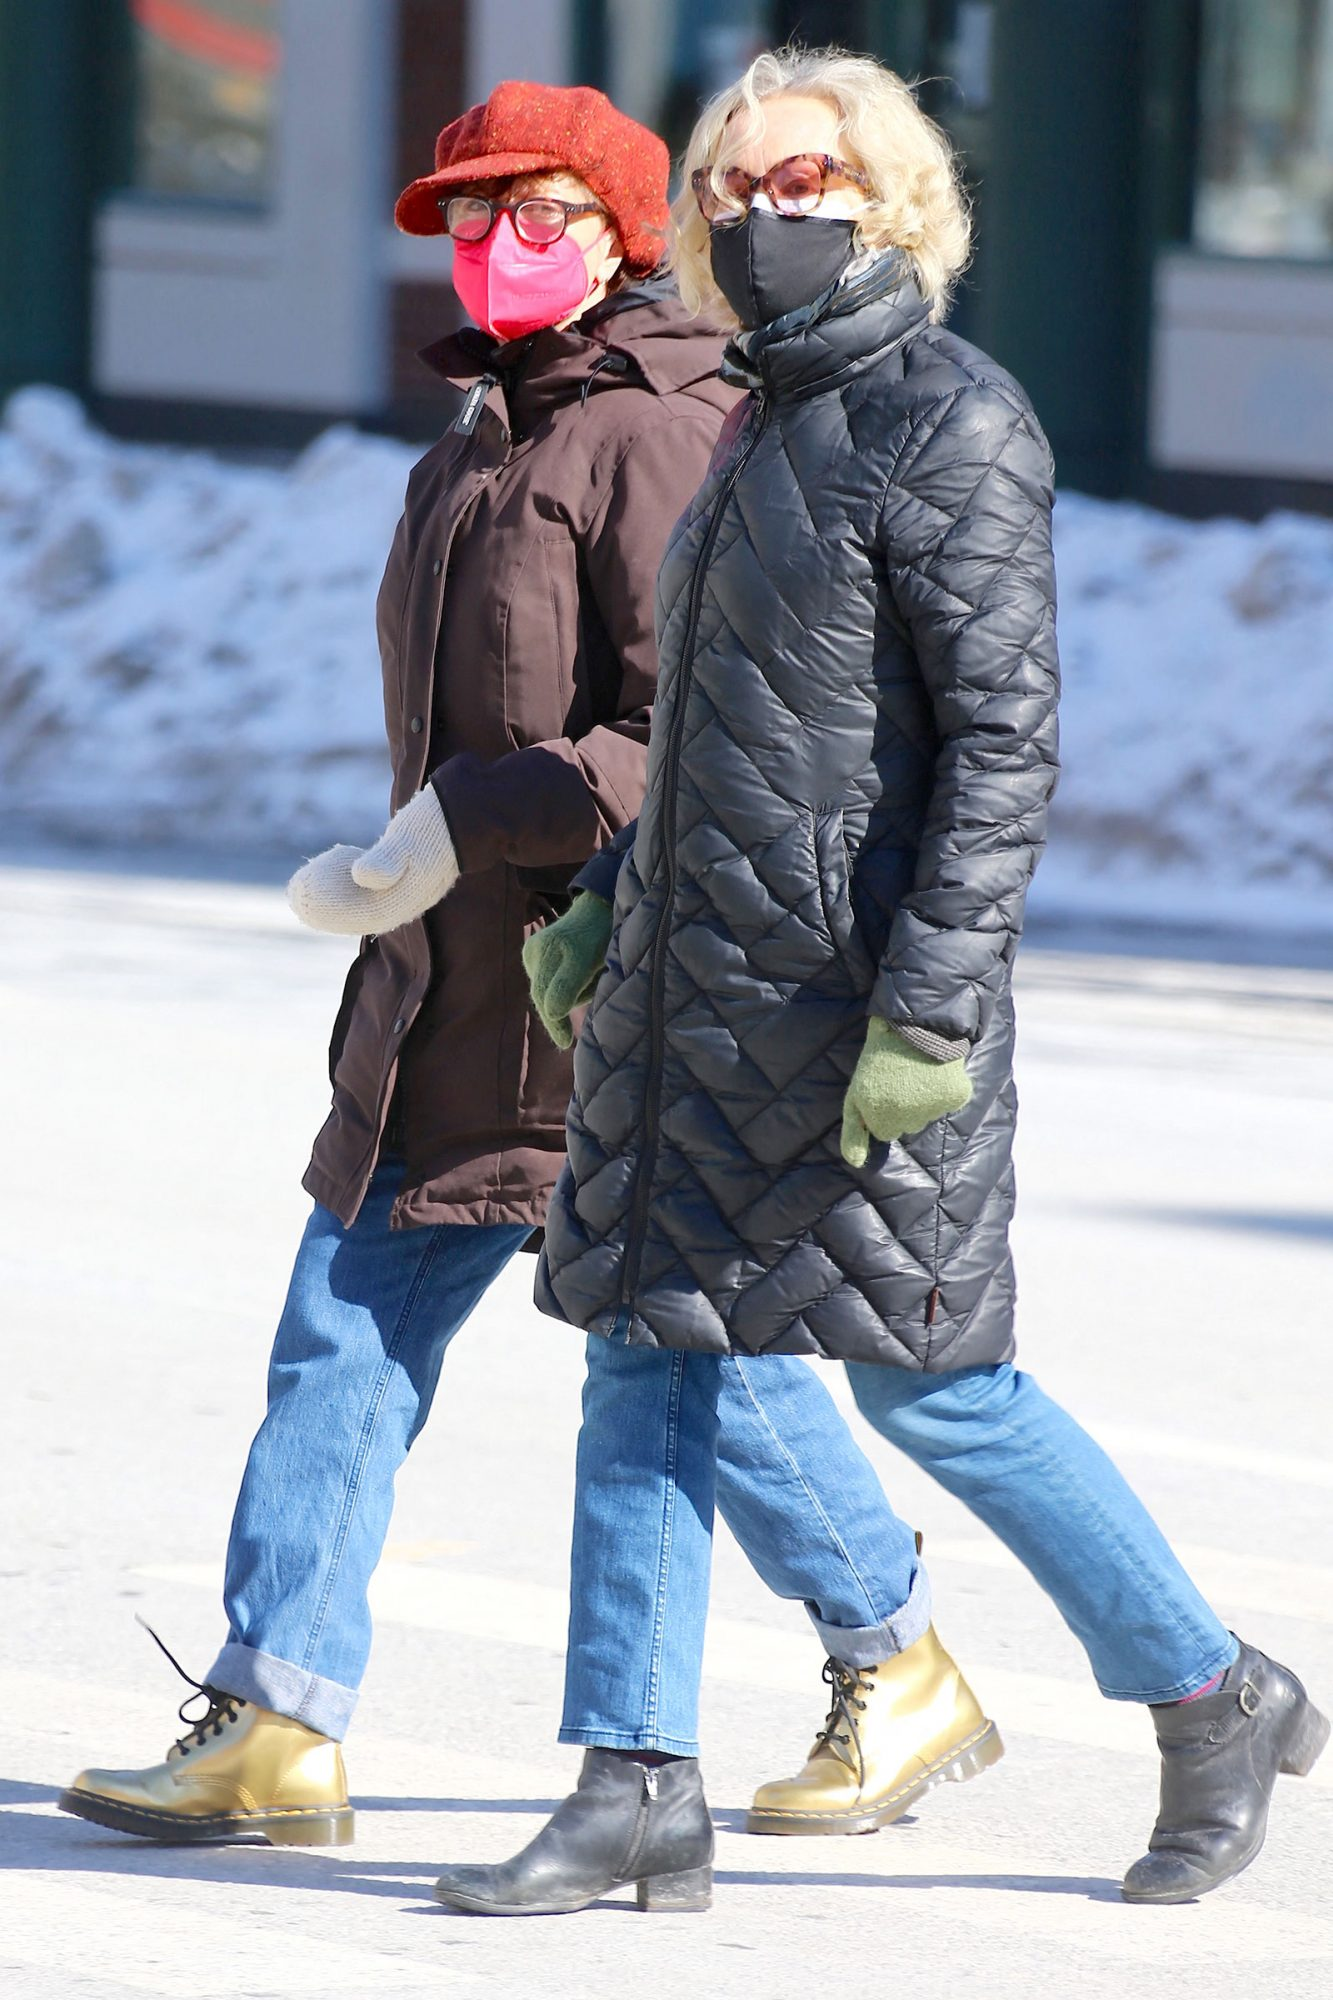 Actresses Susan Sarandon and Jessica Lange are walking together on Sixth Avenue in New York on February 8, 2021.